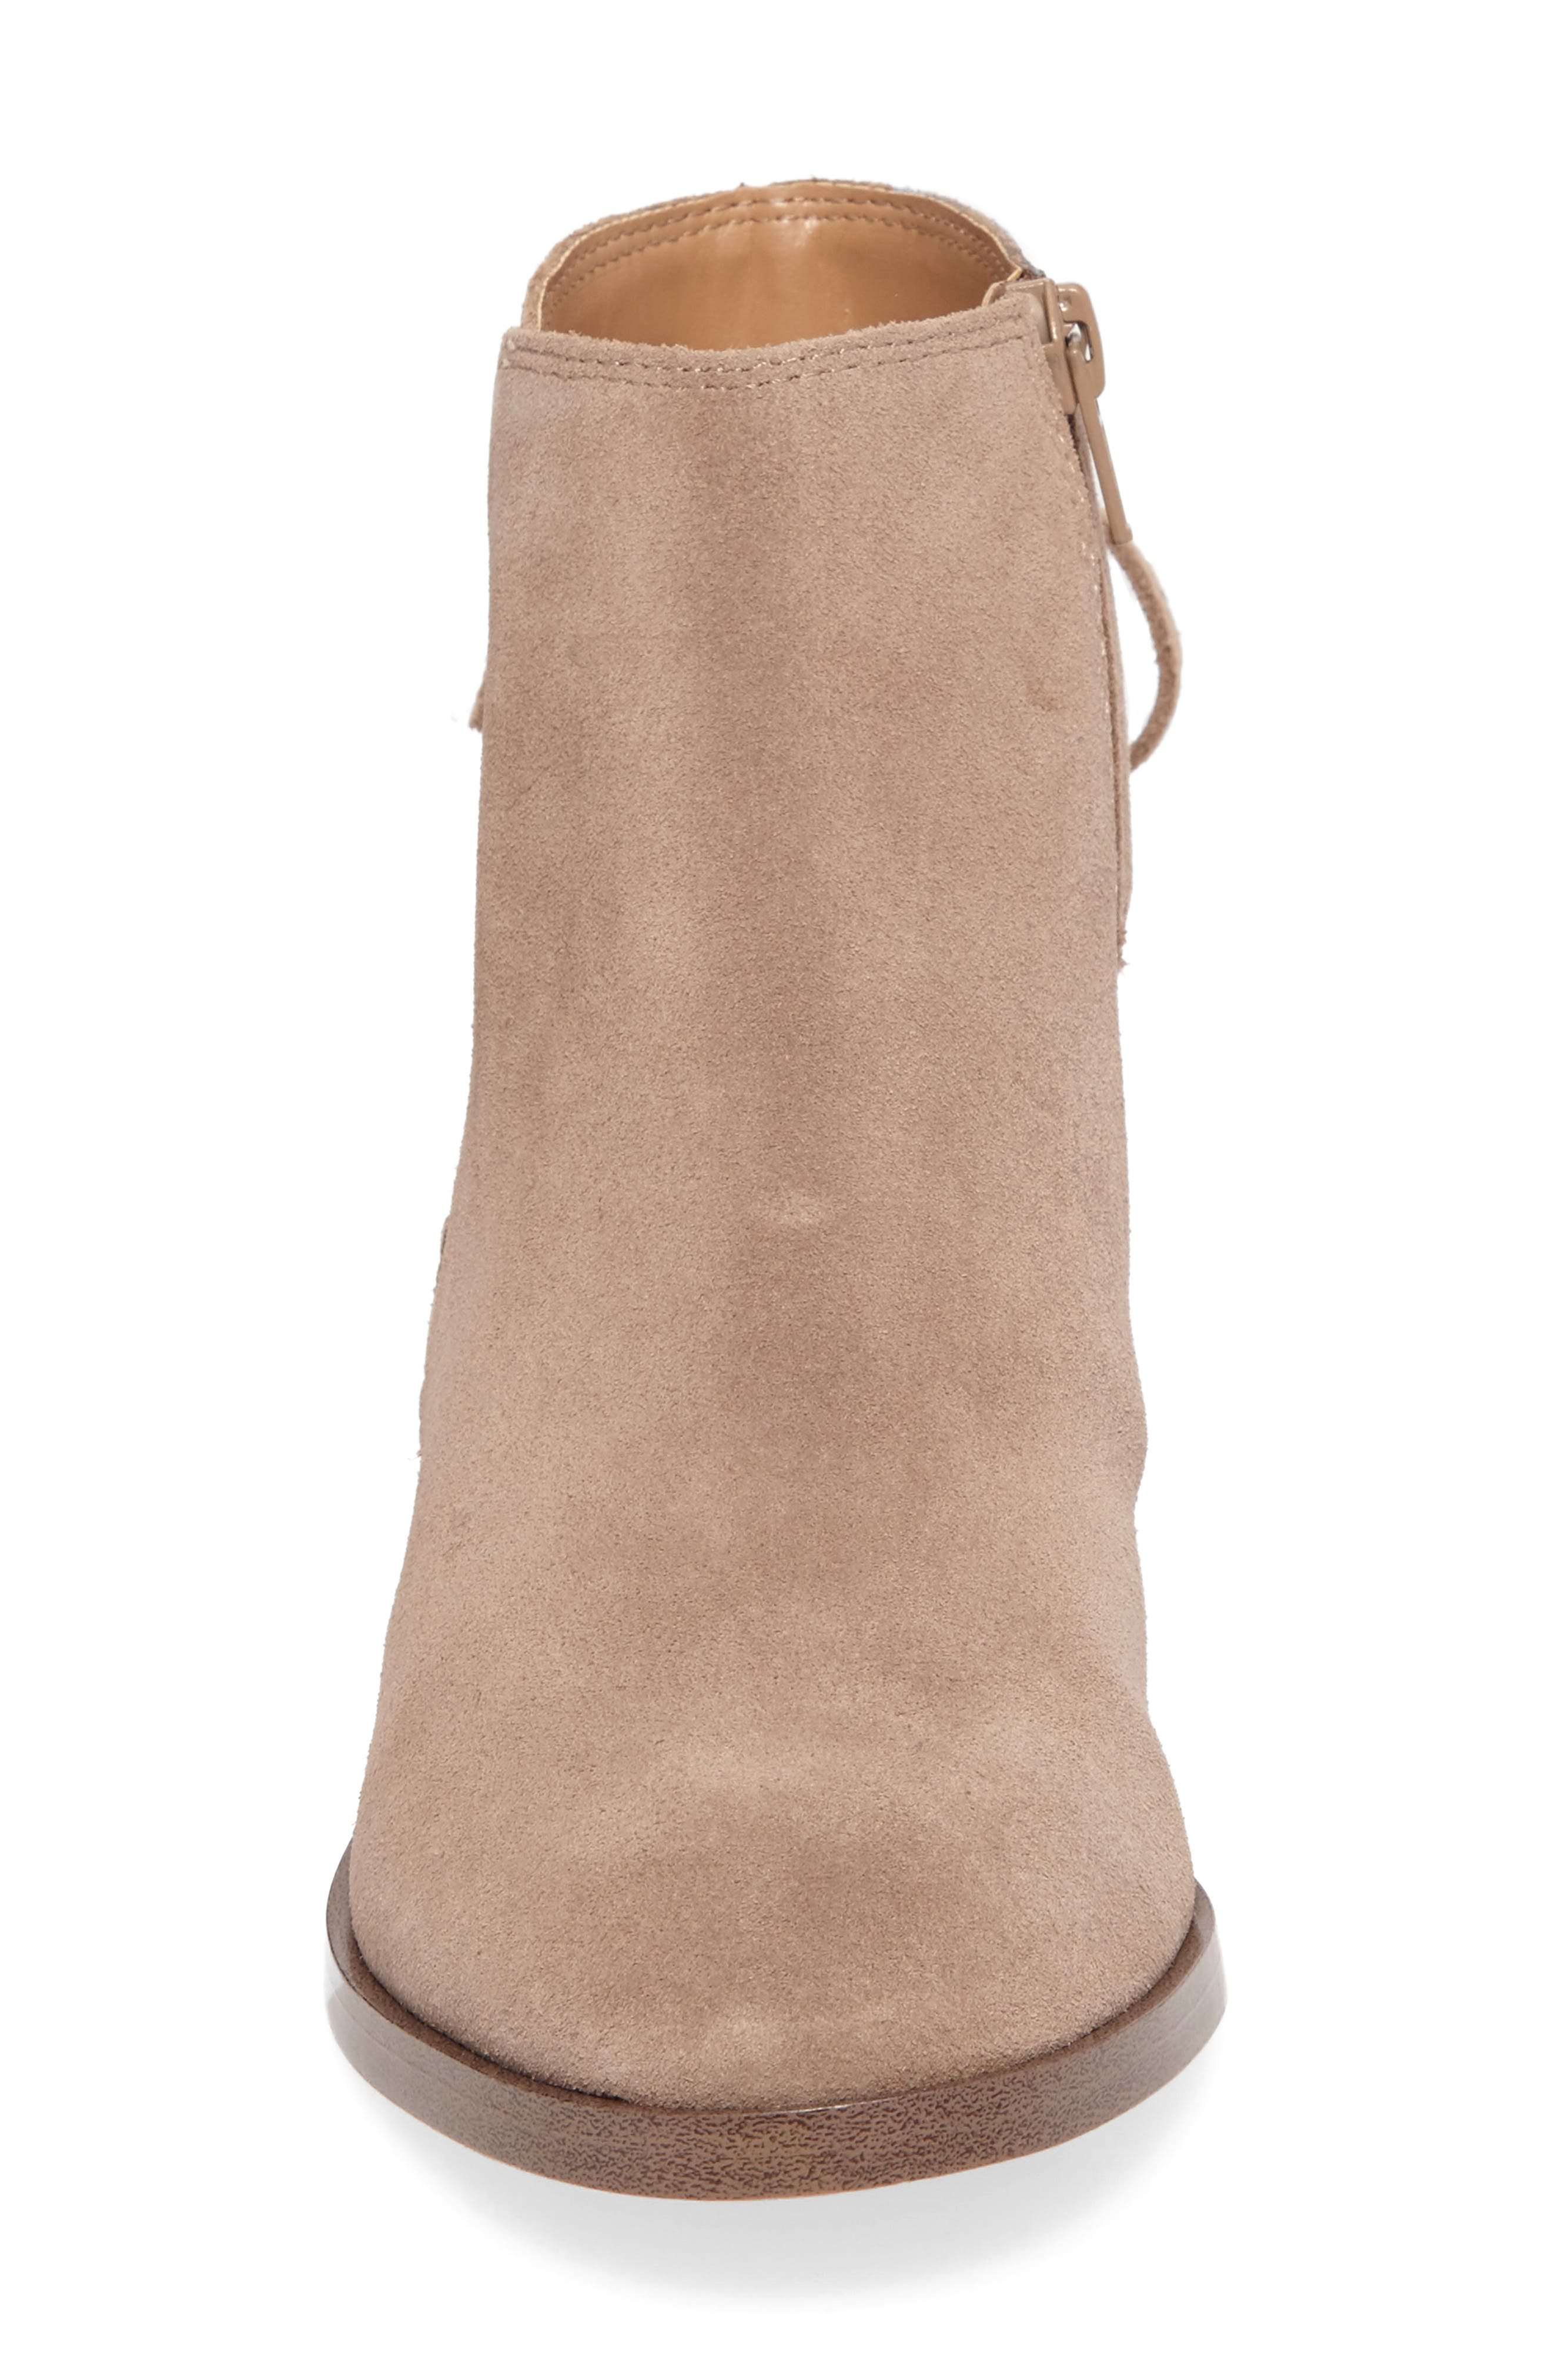 Lachlan Tie Back Bootie,                             Alternate thumbnail 4, color,                             Taupe